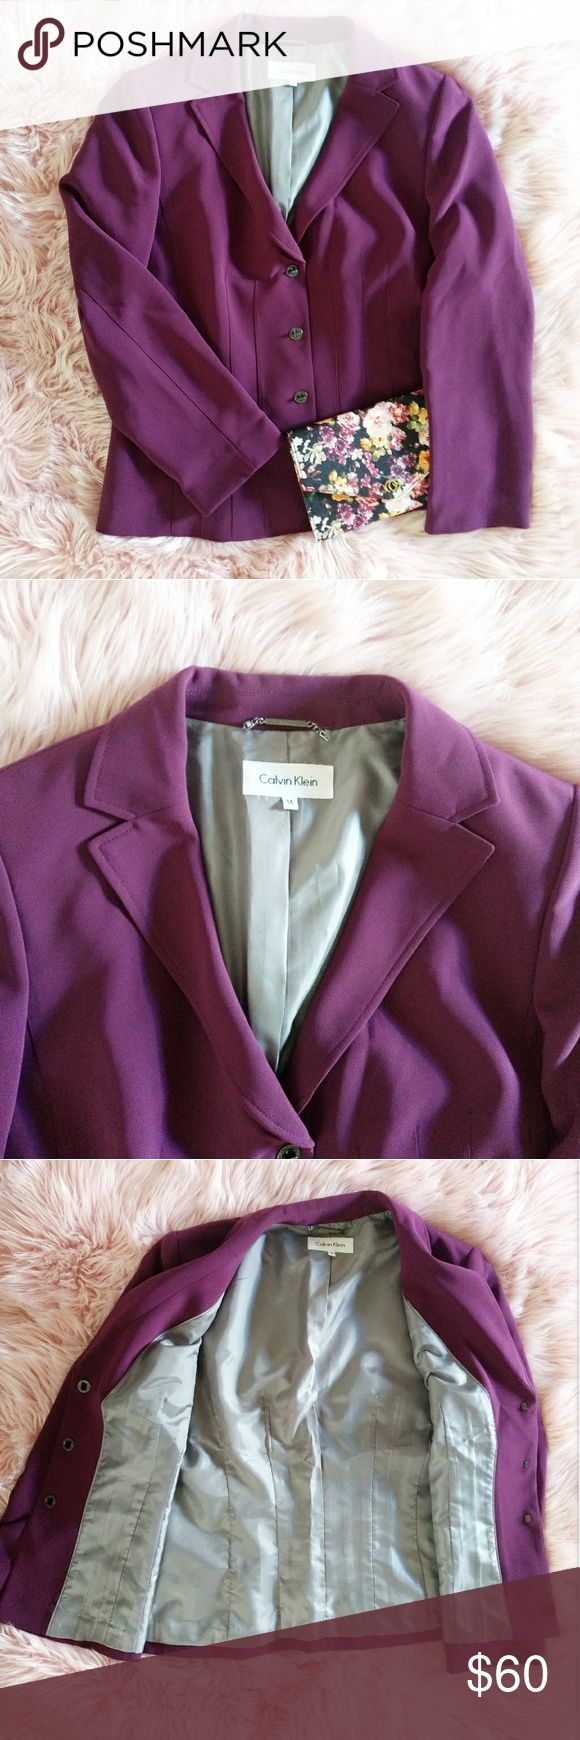 NWOT CALVIN KLEIN PURPLE BLAZER SIZE 14 Brand new without tag. Size: 14 Approx. Measurements: - Length: - Bust: - Sleeve: Material (shell & lining): 100% polyester Dry clean only. Calvin Klein Jackets & Coats Blazers